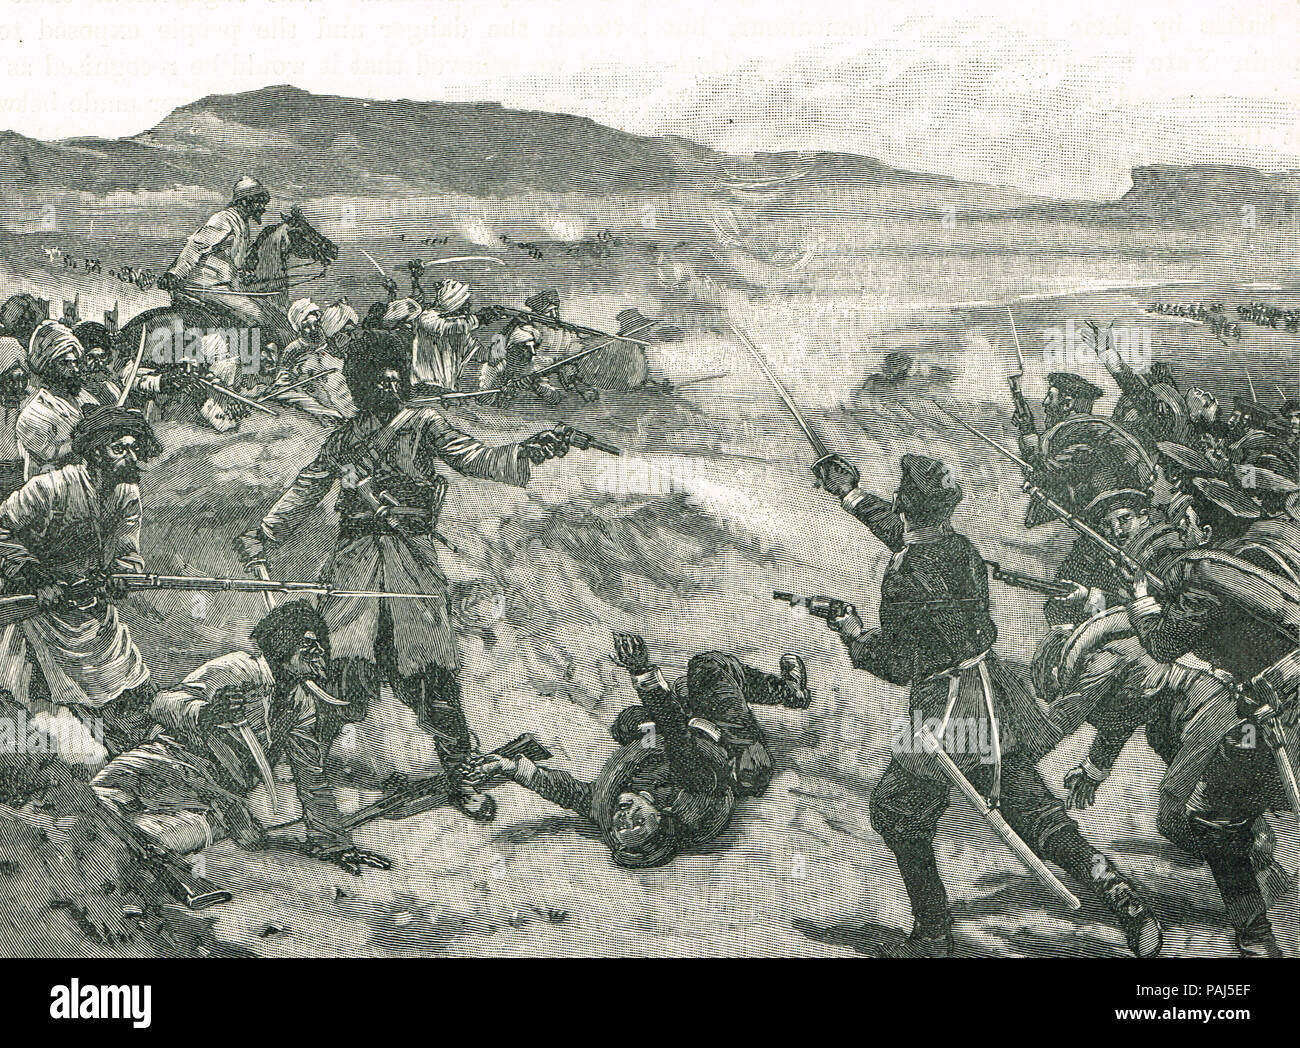 Russian encounter with Afghans, Pul-i-Khishty AKA Brick Bridge, The Panjdeh incident, March 30 1885 Stock Photo